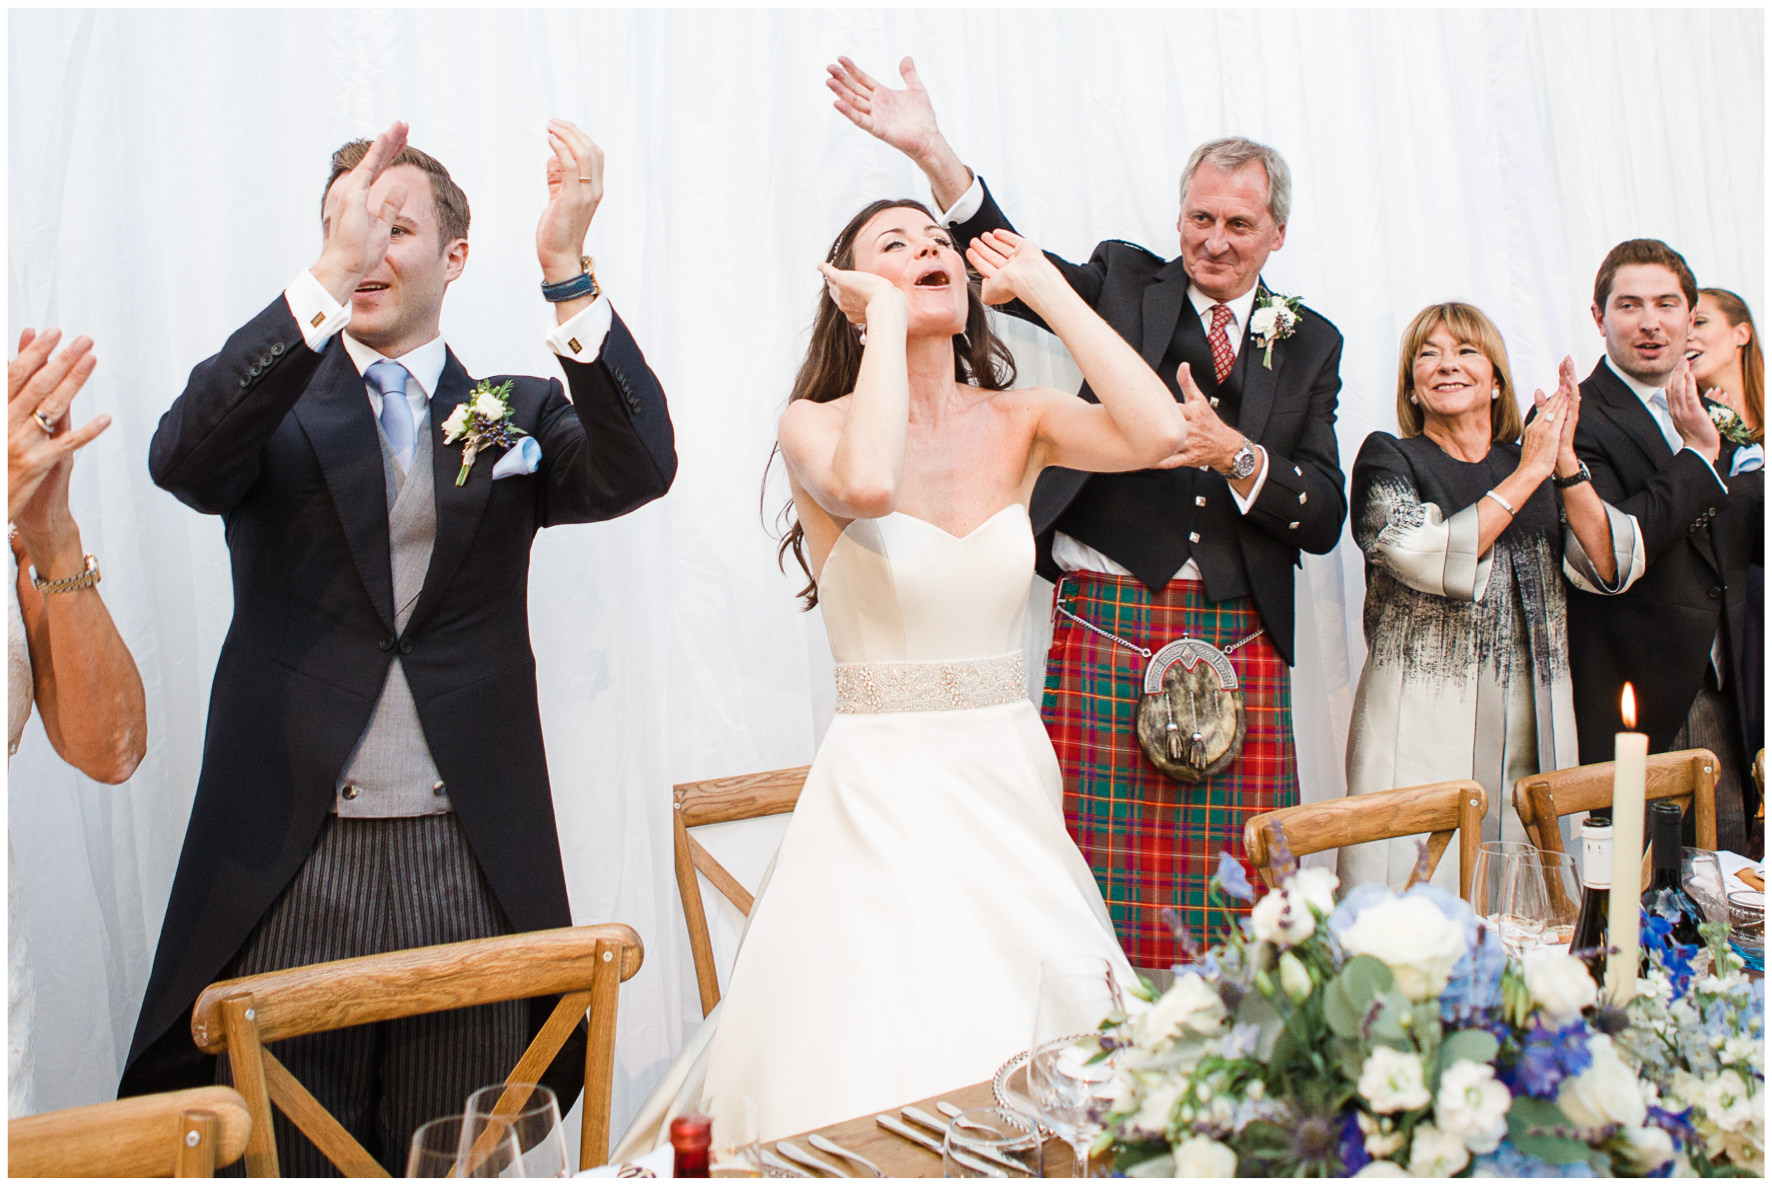 Lucy Davenport Photography, home wedding, marquee wedding, clear marquee, wedding guests, wedding breakfast, toptable